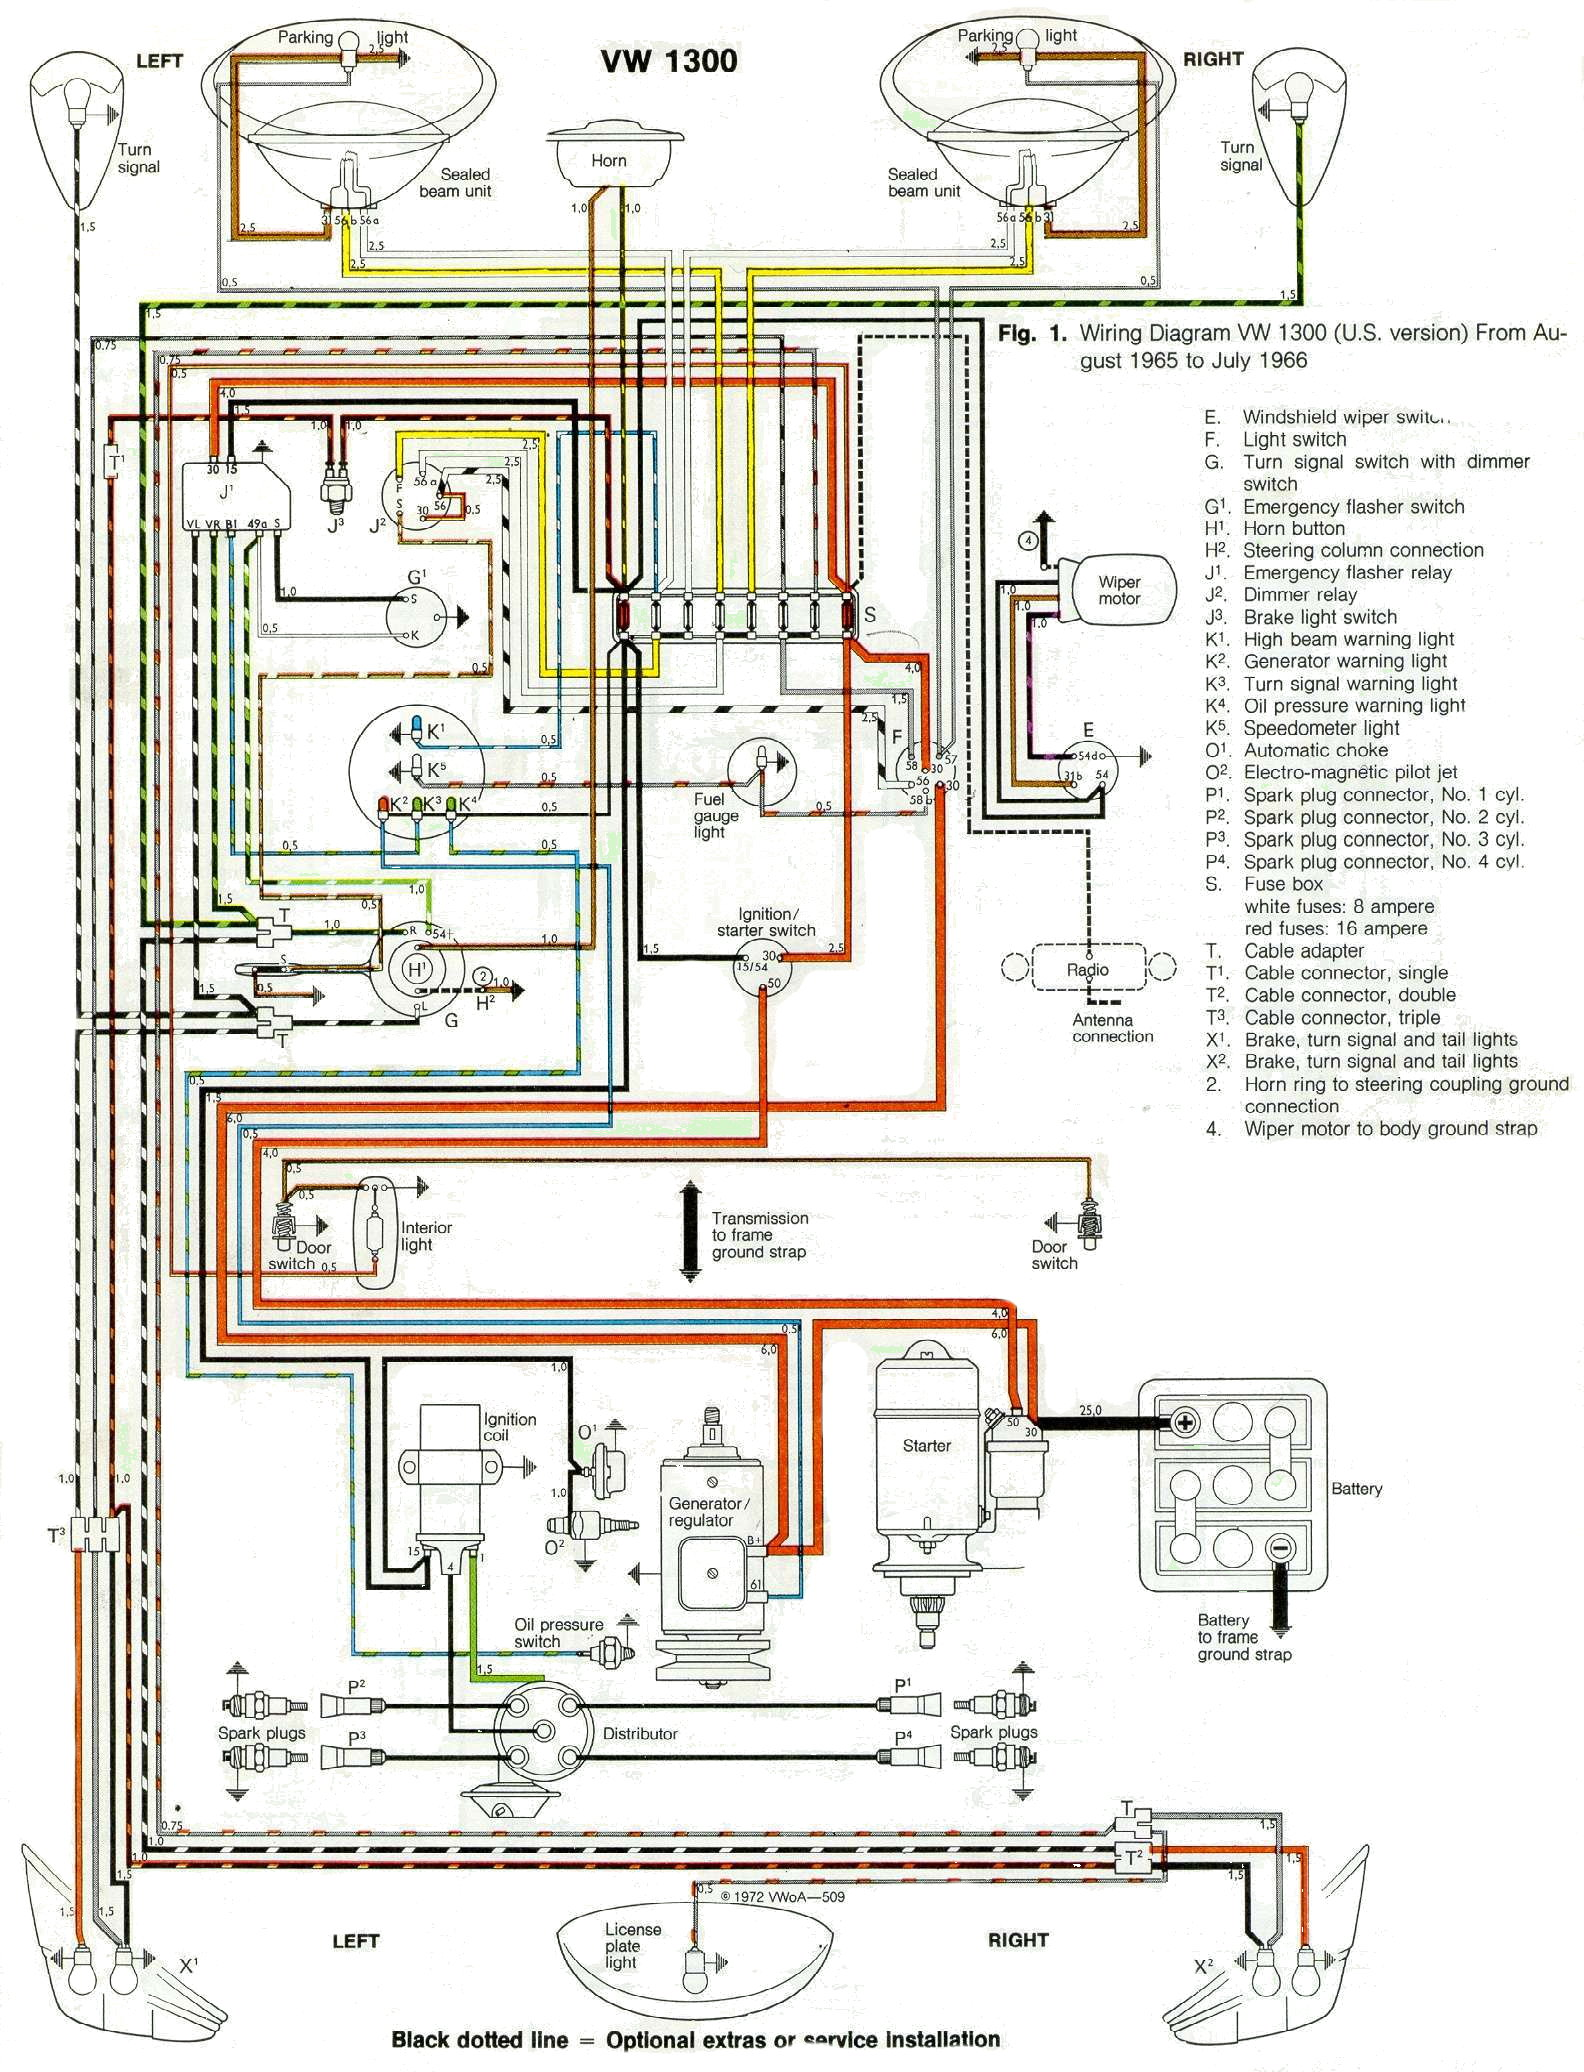 beetle wiring diagram beetle wiring diagram to fix a c fan 1968 4020 Wiring Diagram 1966 wiring diagram beetle wiring diagram 7 11x17 color wiring diagram 1971 vw super beetle 1968 4020 john deere starter wiring diagram